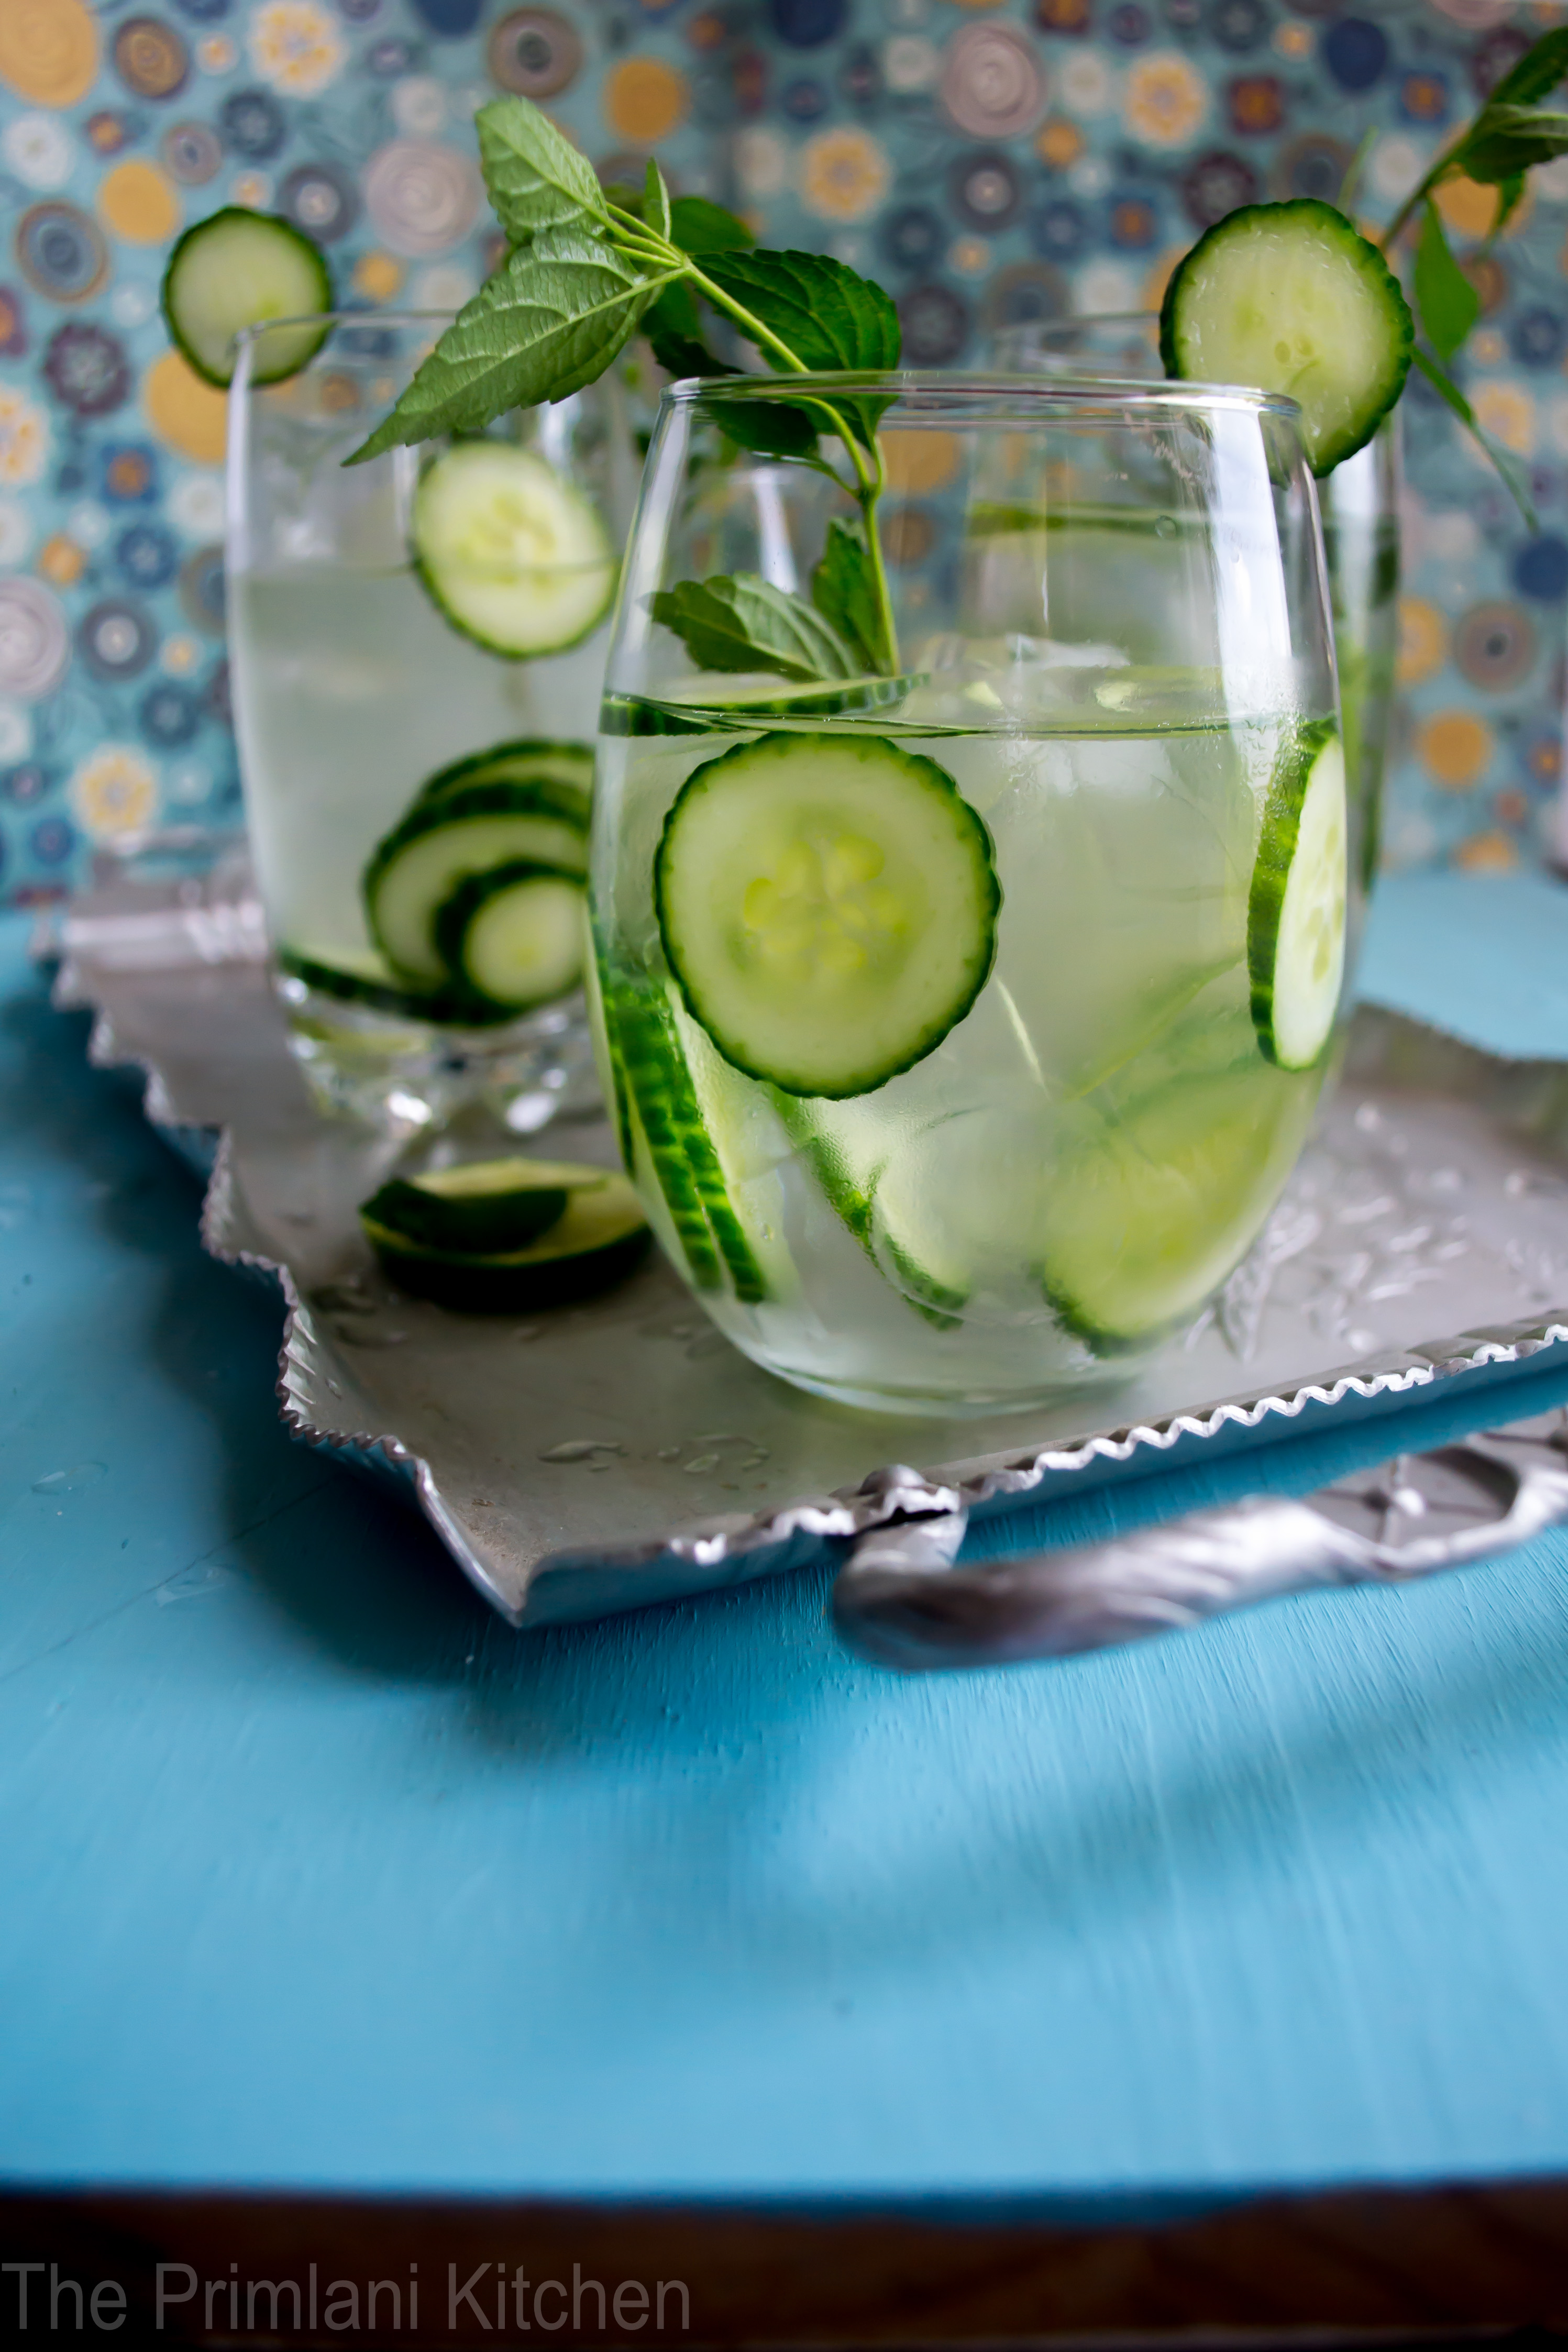 The health benefits of cucumber water are worth making it at home. It can help detox, lower blood pressure, and more. A simple recipe is included.